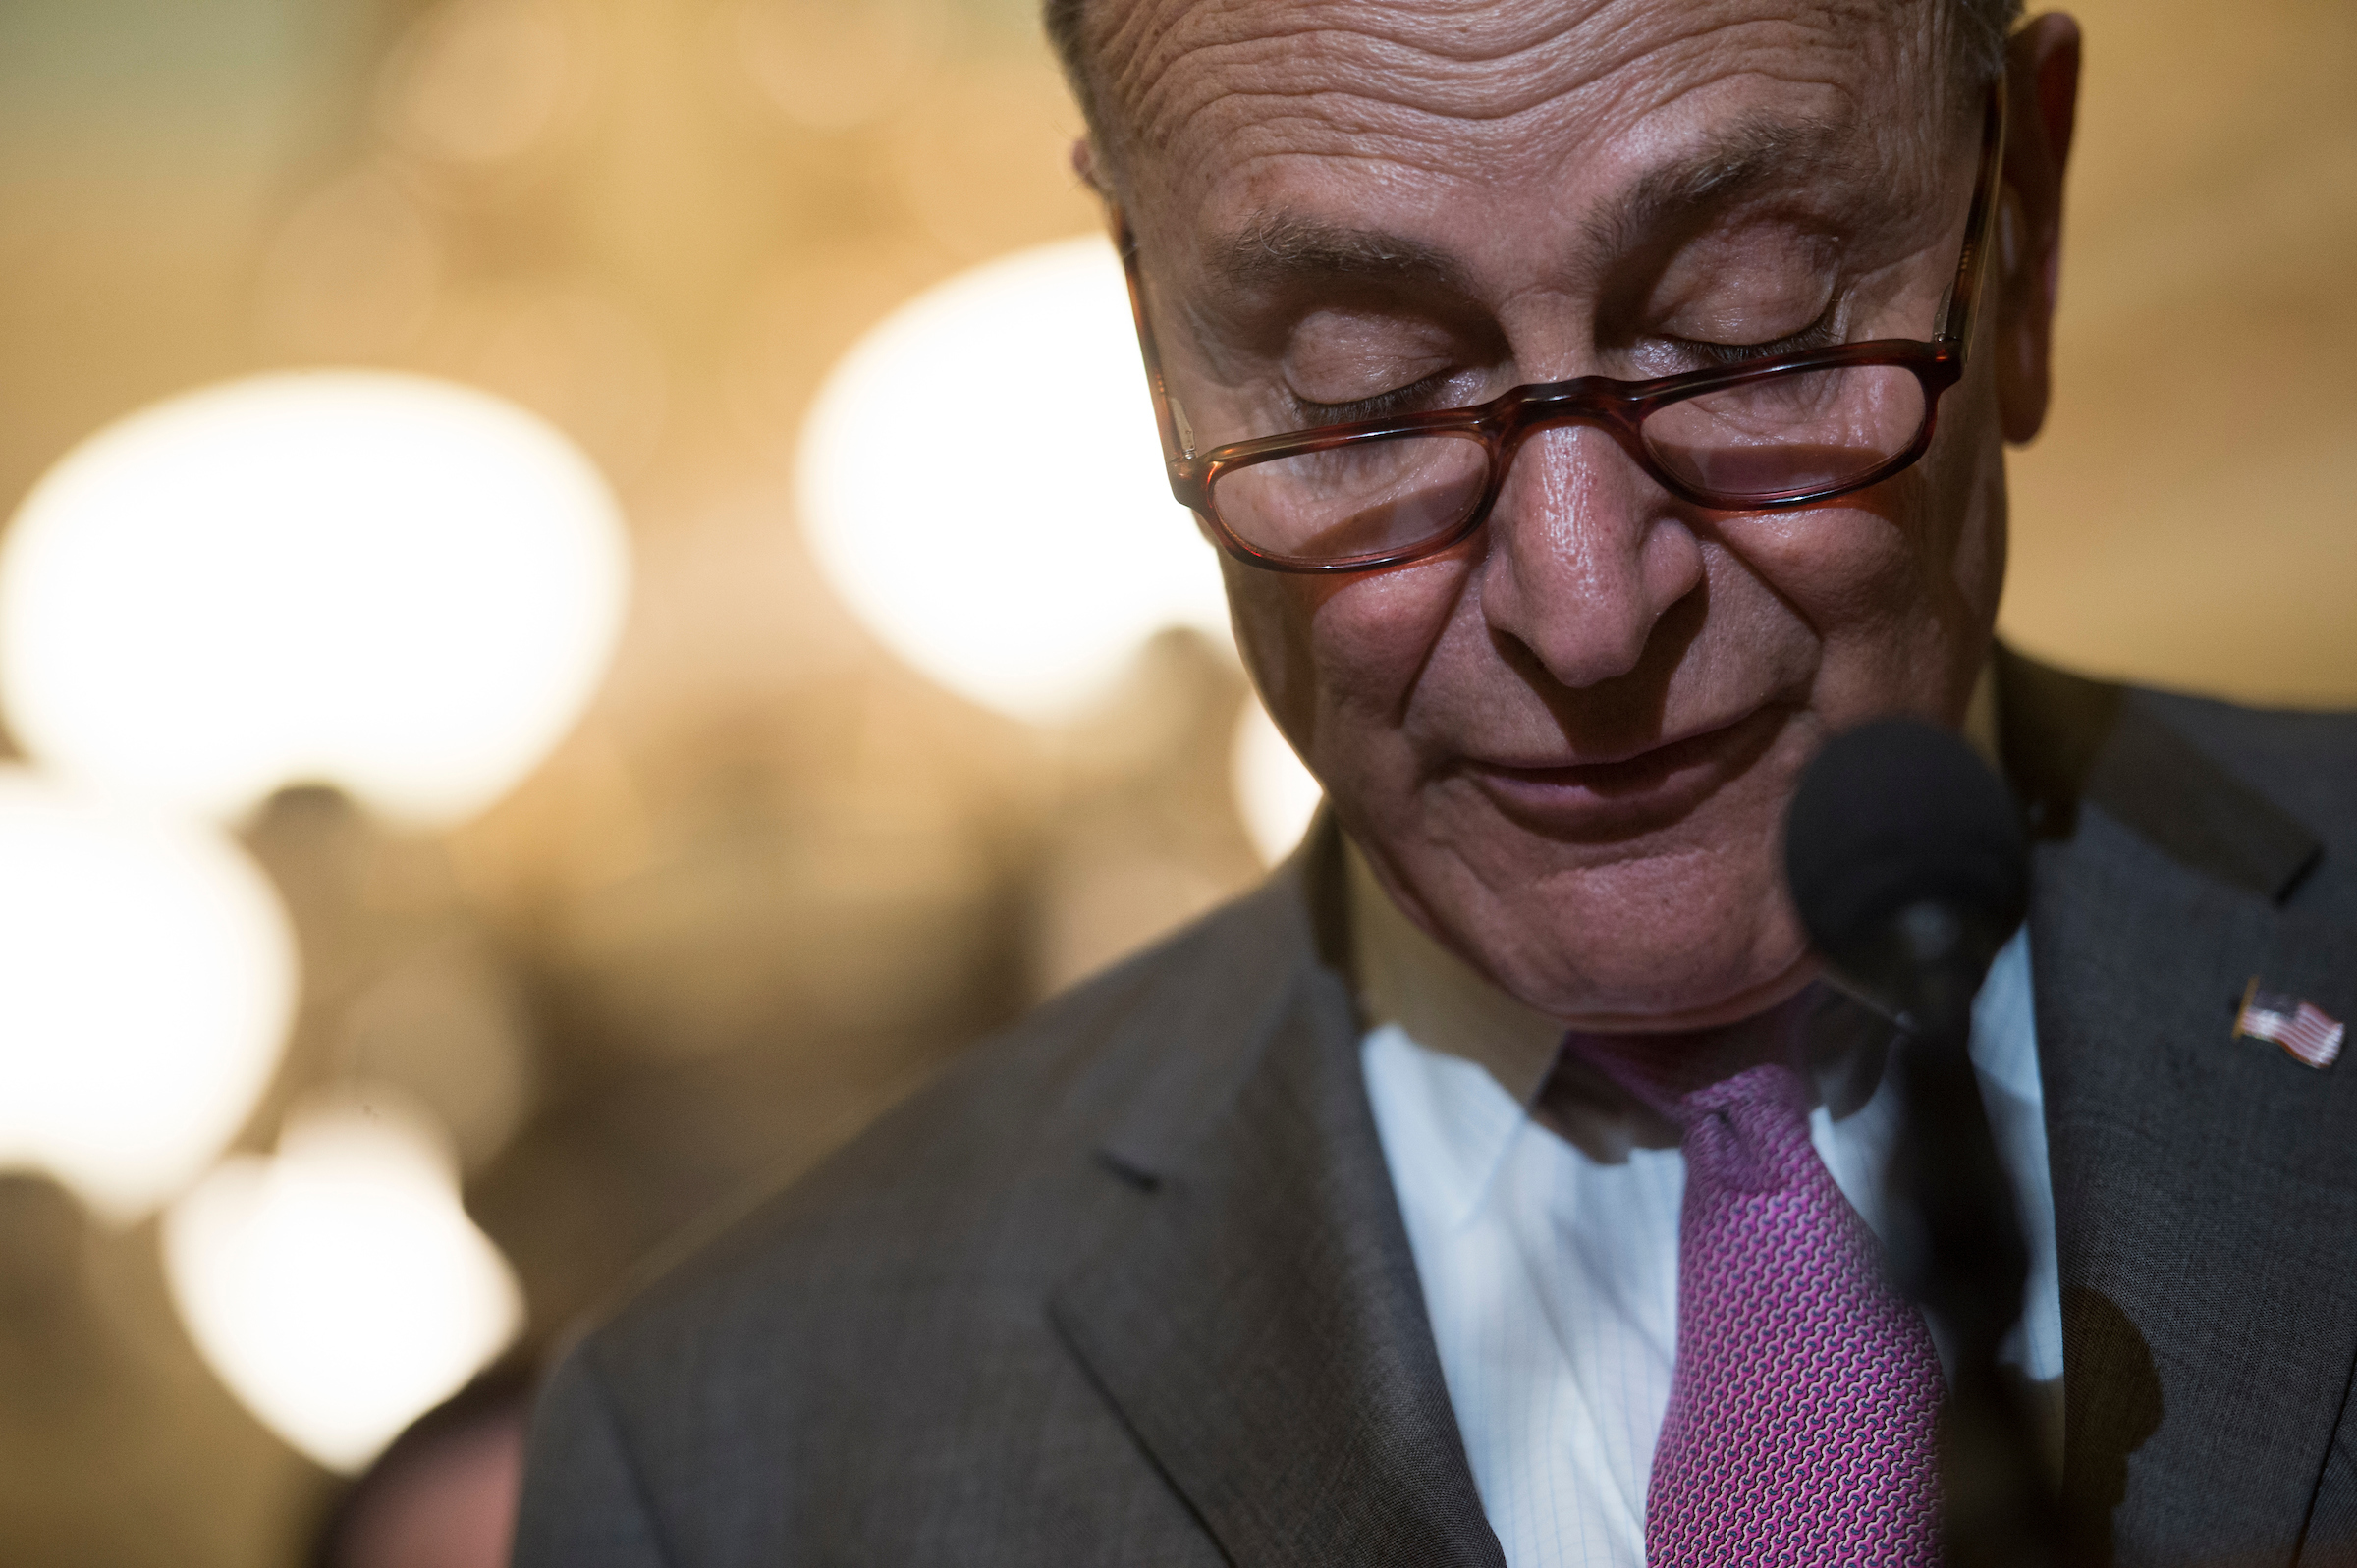 Senate Minority Leader Charles Schumer, D-N.Y., speaks to the press after the Senate Democratic Policy luncheon in the Capitol. (Sarah Silbiger/CQ Roll Call File Photo)